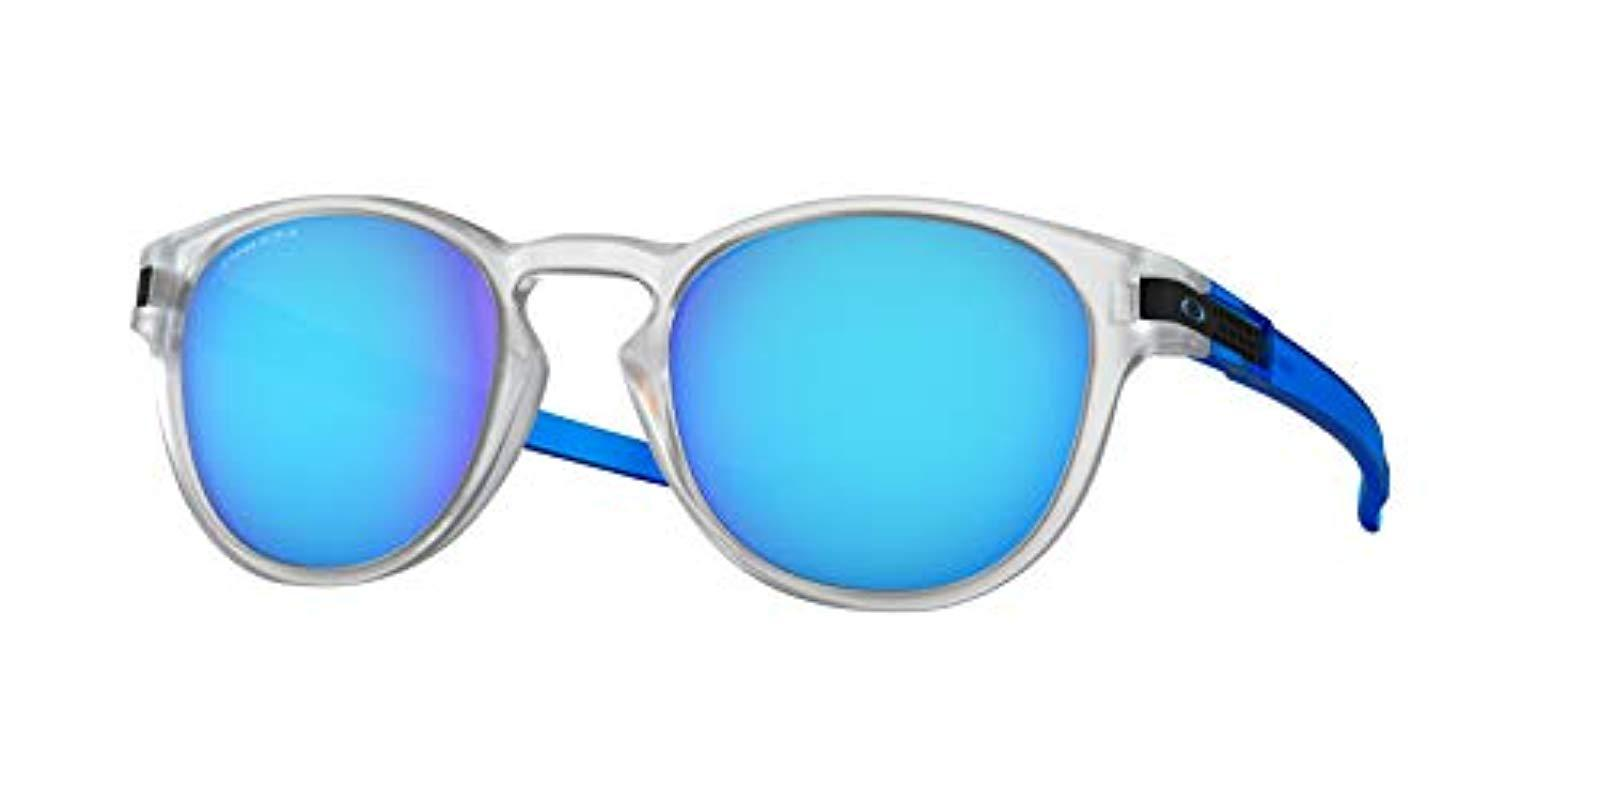 3a931417d68 Ray-Ban. Men s Blue Latch Sunglasses